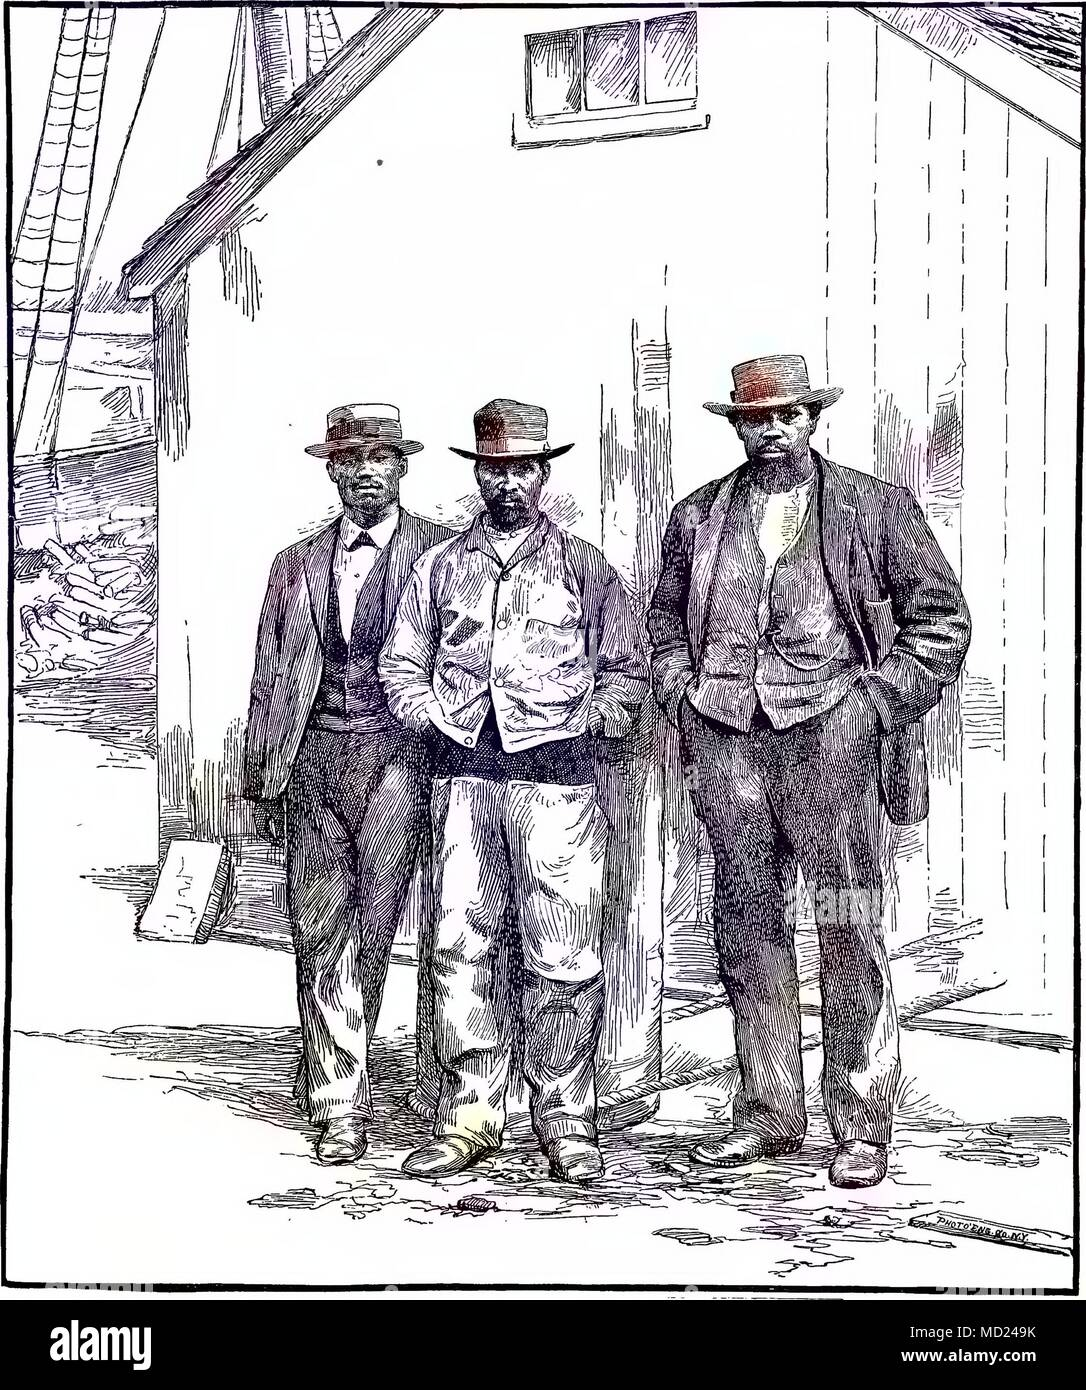 Etching of three Cape Verdean men standing on a wharf, New Bedford, Massachusetts, 1880. Courtesy Internet Archive. Note: Image has been digitally colorized using a modern process. Colors may not be period-accurate. () - Stock Image